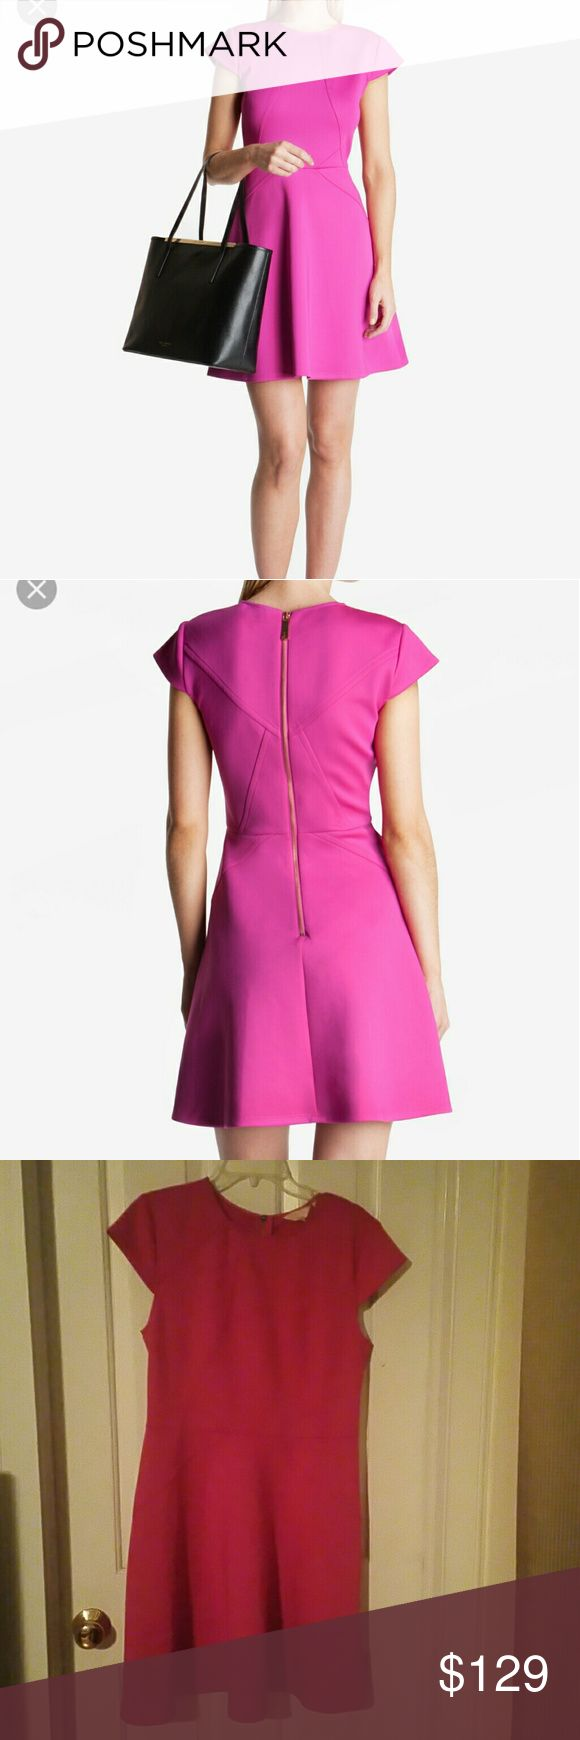 NWT Ted Baker Skater dress Name of color is Purple, but it looks more like a fushia. Ted Baker Dresses